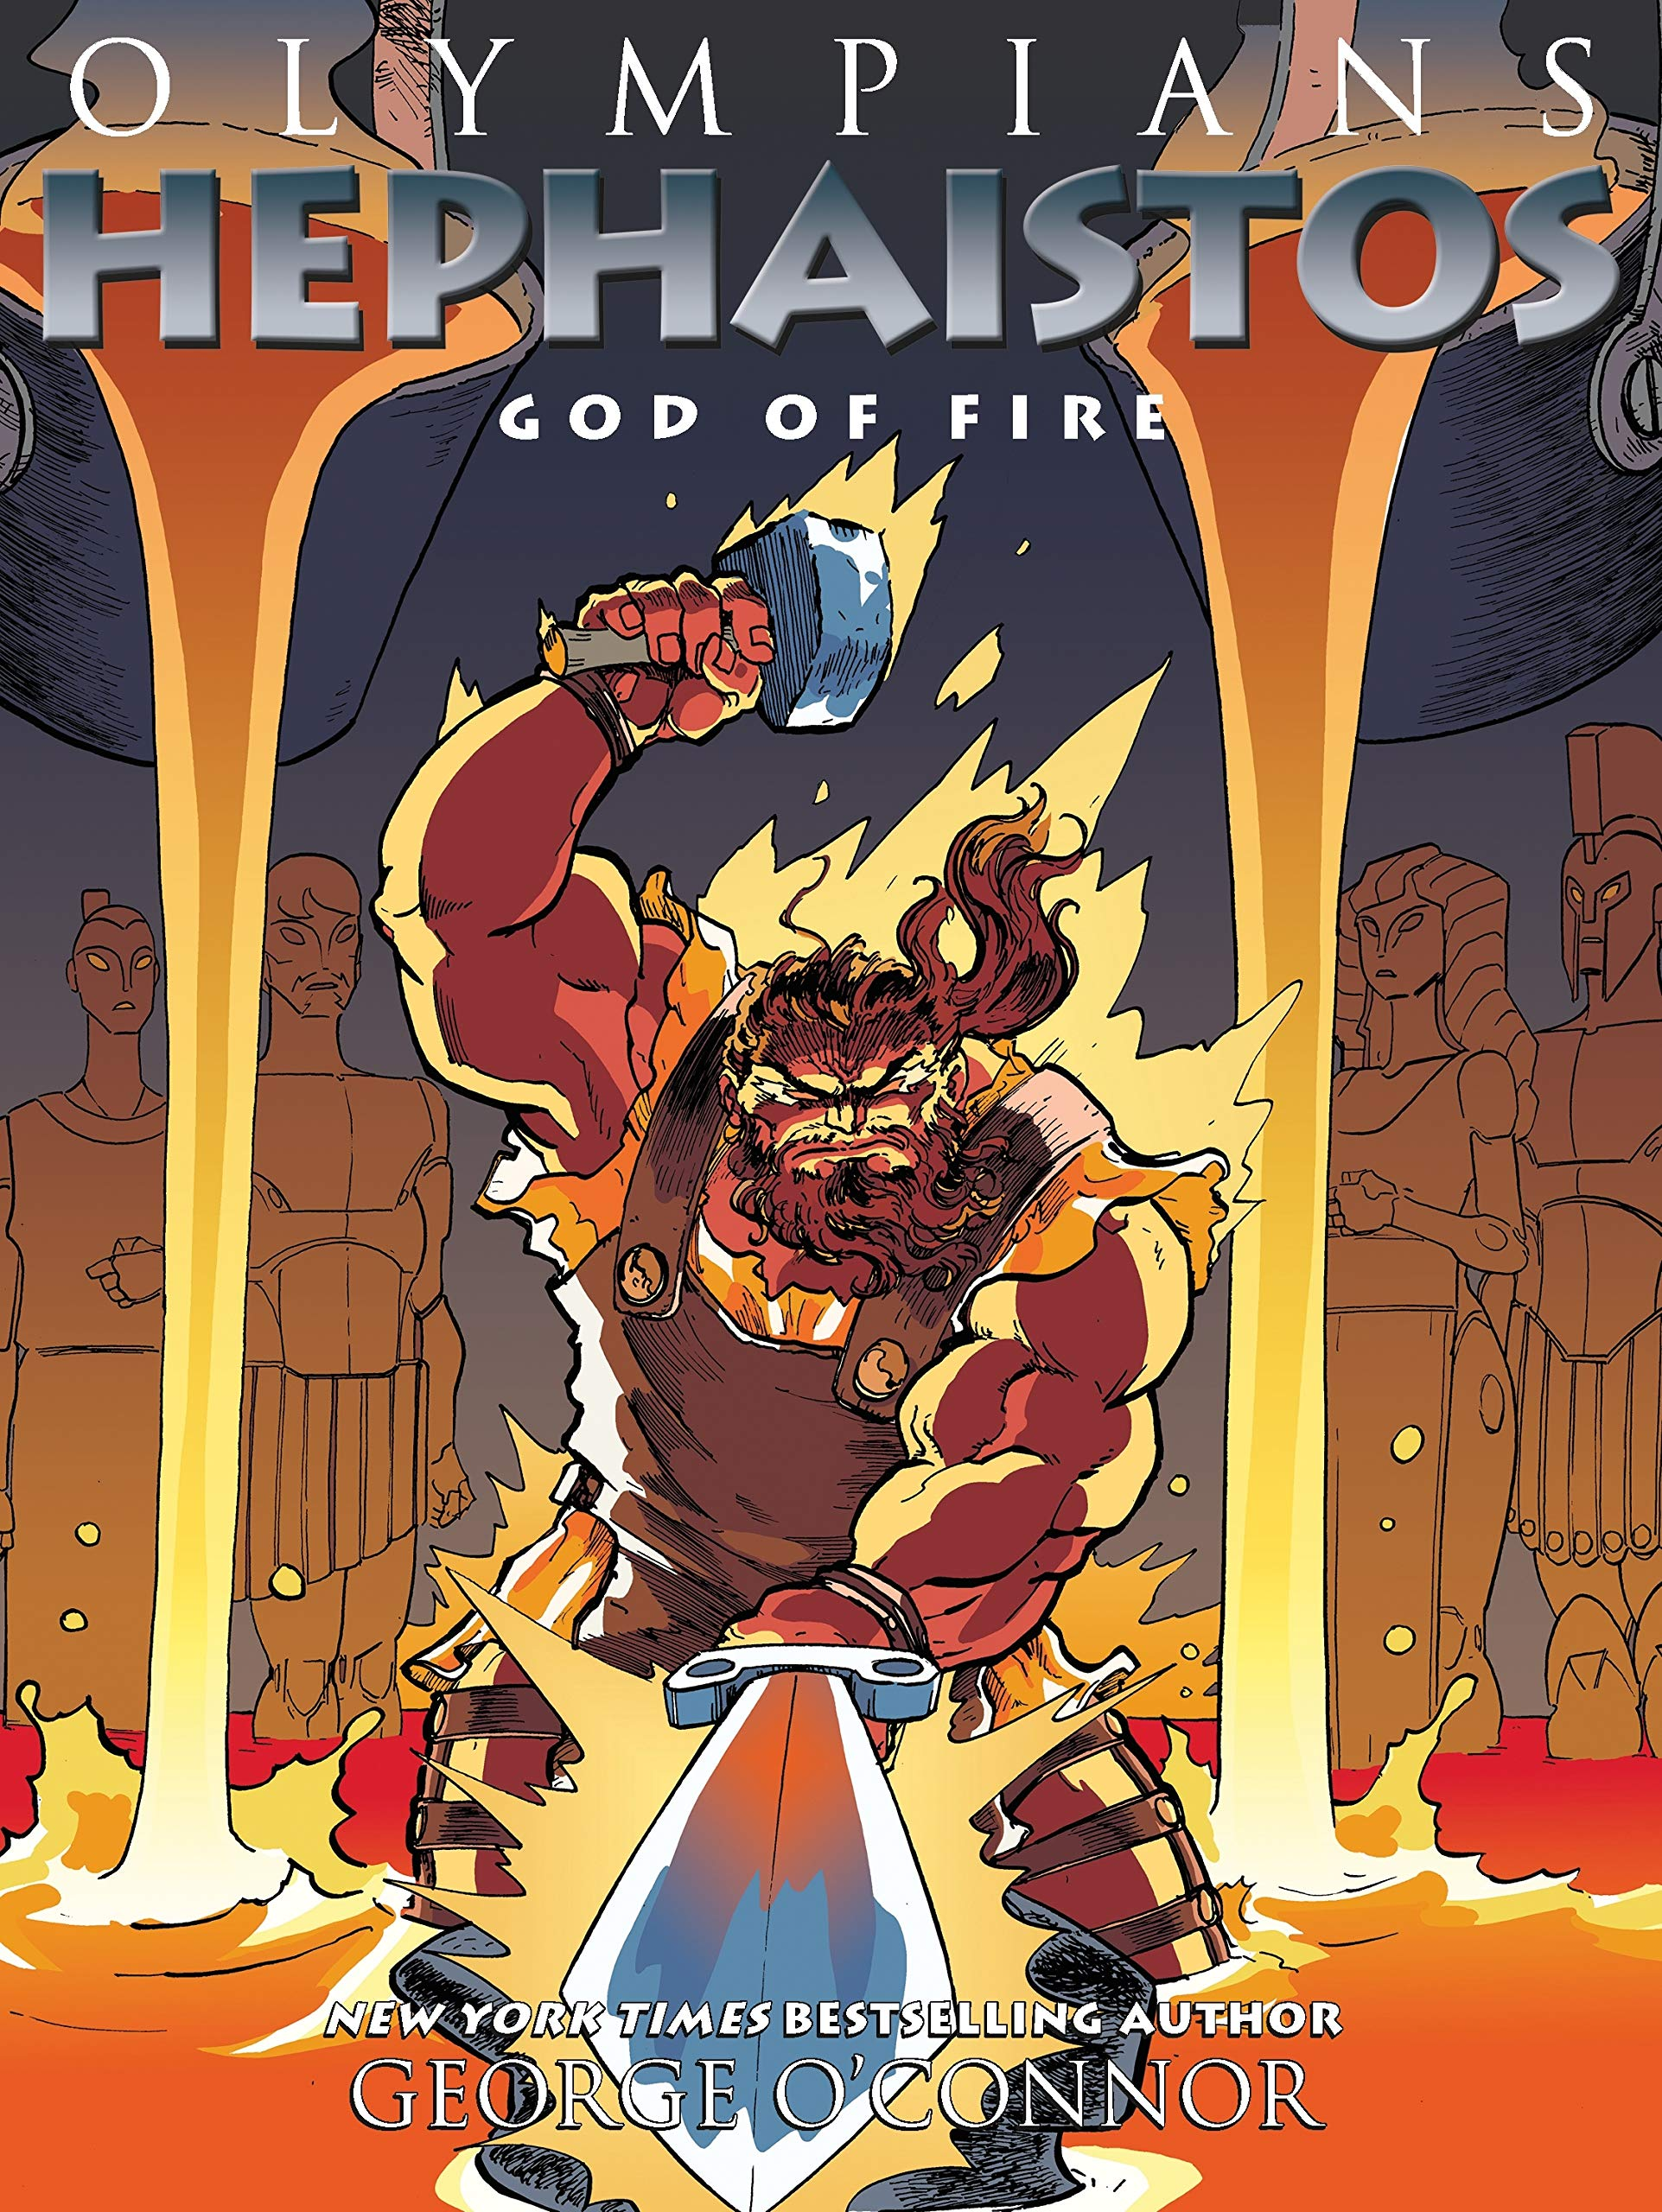 Amazon.com: Olympians: Hephaistos: God of Fire (9781626725270): O'Connor,  George: Books